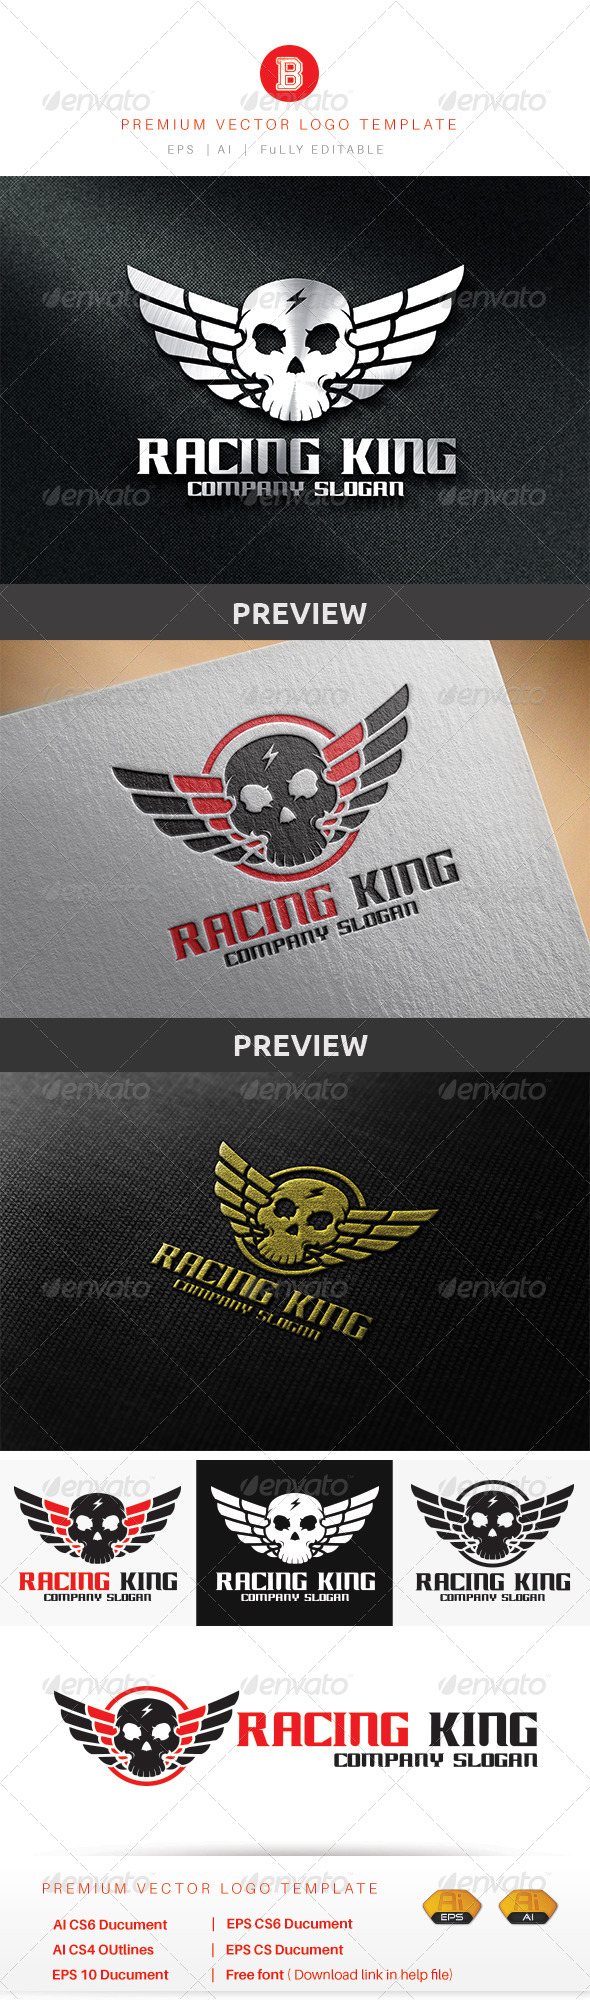 GraphicRiver Racing King 8774178